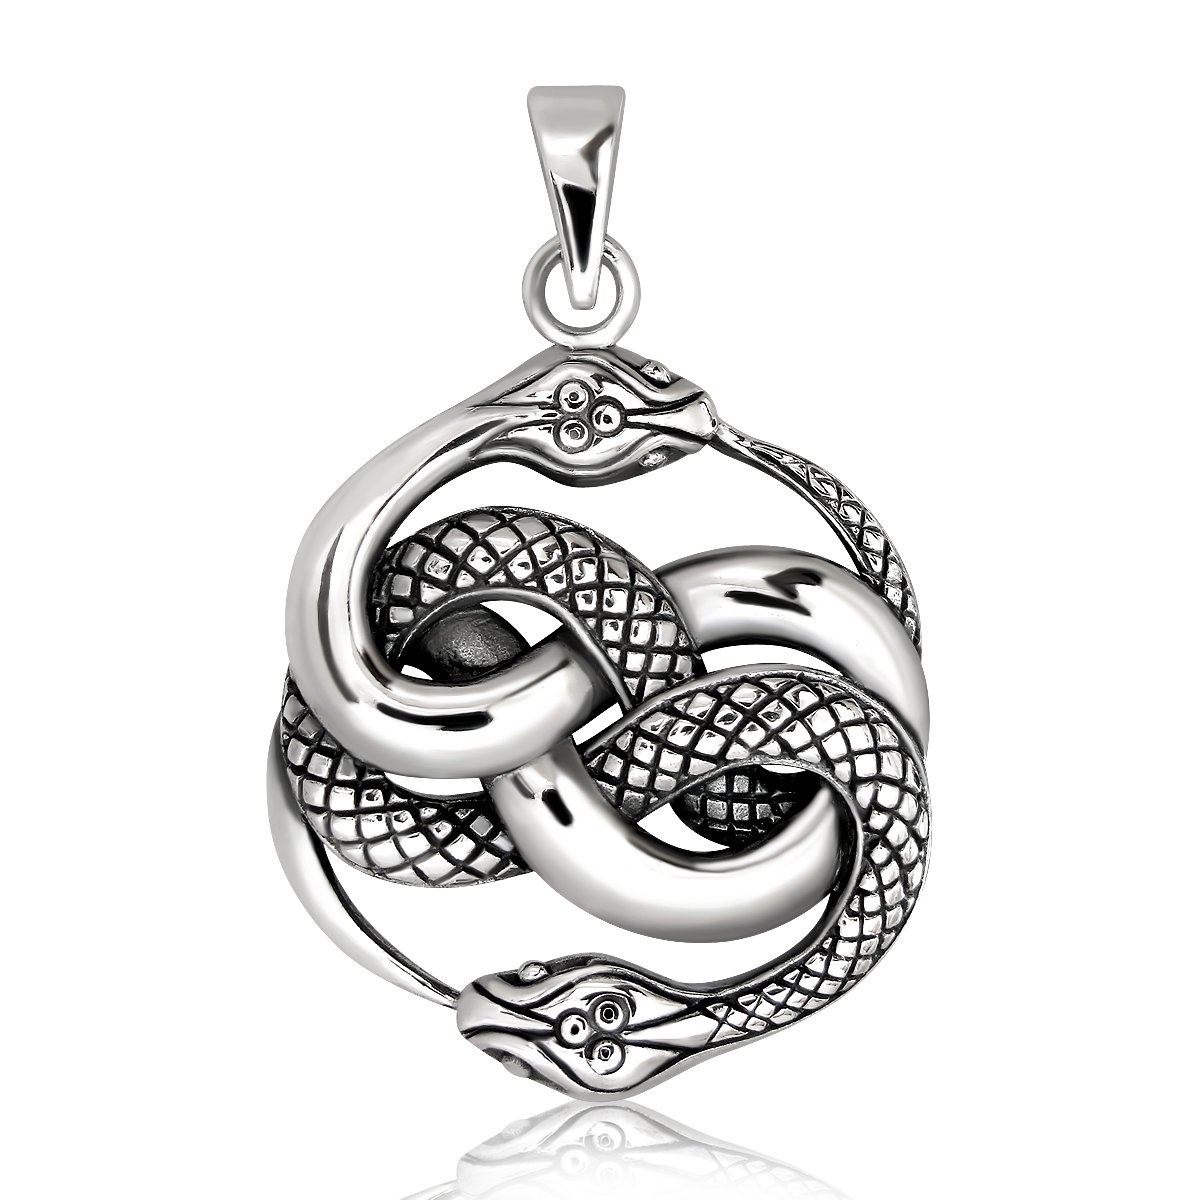 Sistakno Argent sterling 925  Viking Ouroboros Twisted Queue de serpent Eat Symbole D'infini Eternity Nature Cré ation de pendentif 740812519832